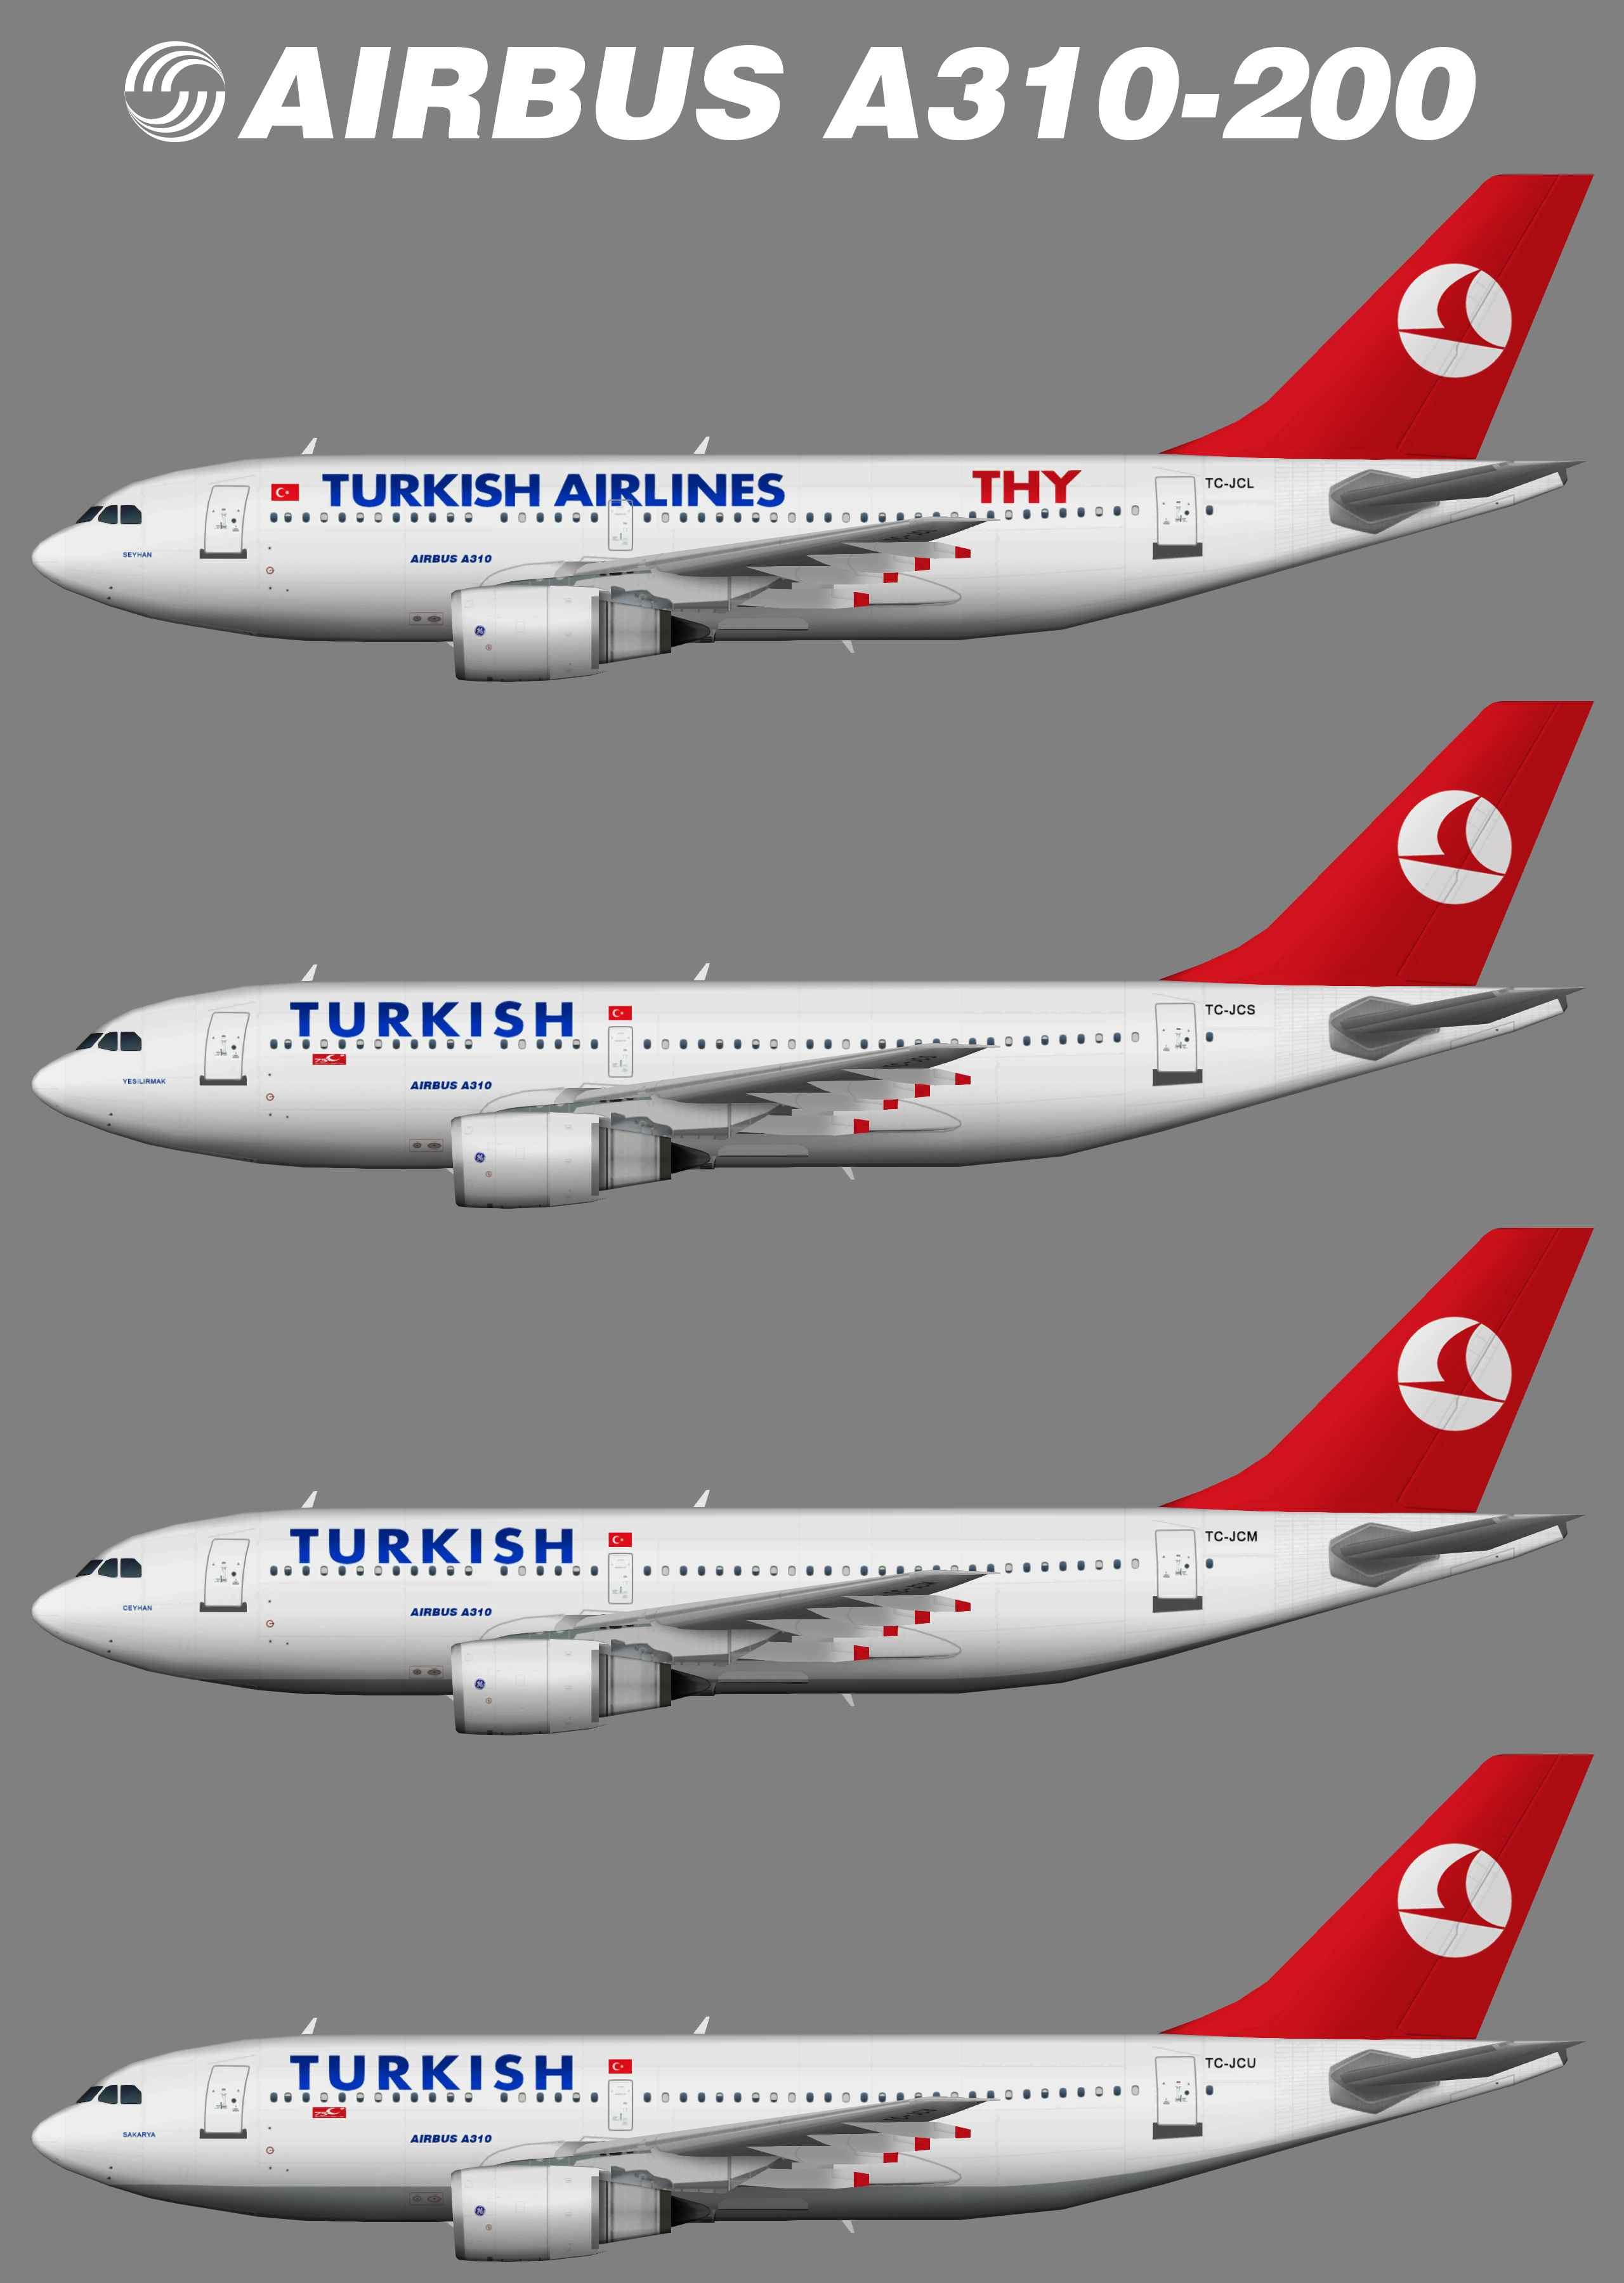 Turkish Airlines Airbus A310-200